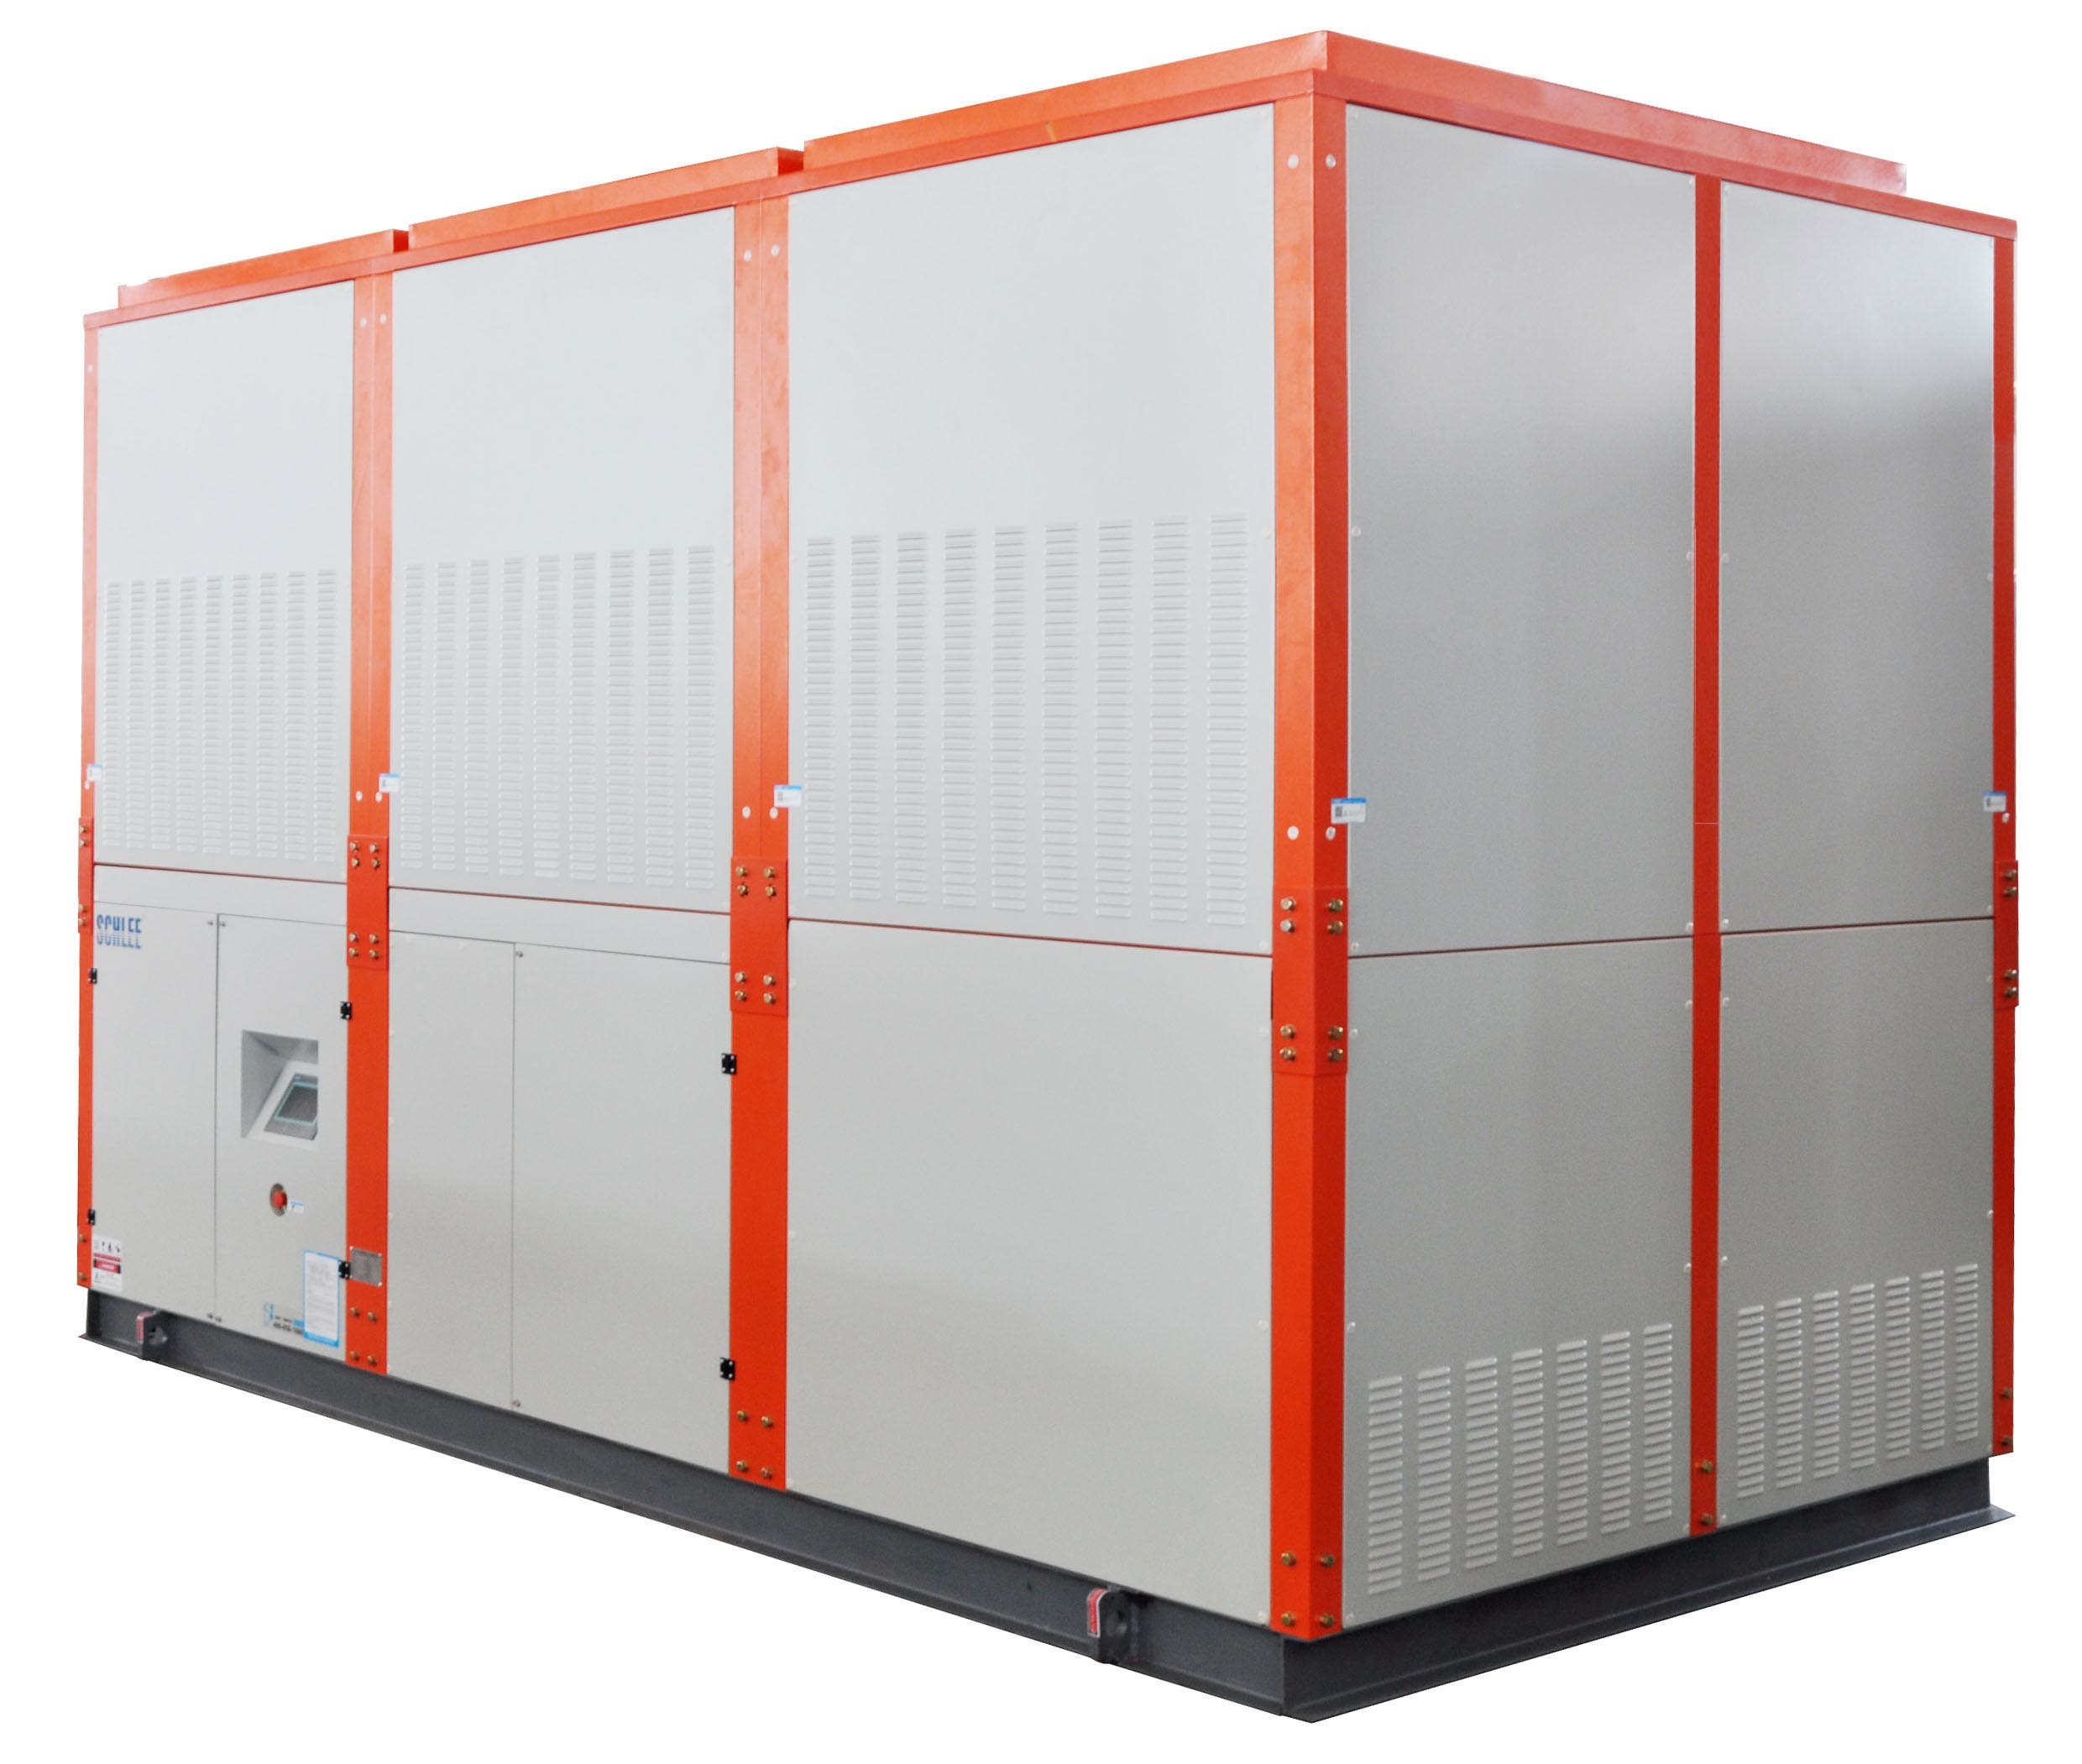 560kw M550zh4 Intergrated Industrial Evaporative Cooled Pharmaceutical HVAC Water Chiller